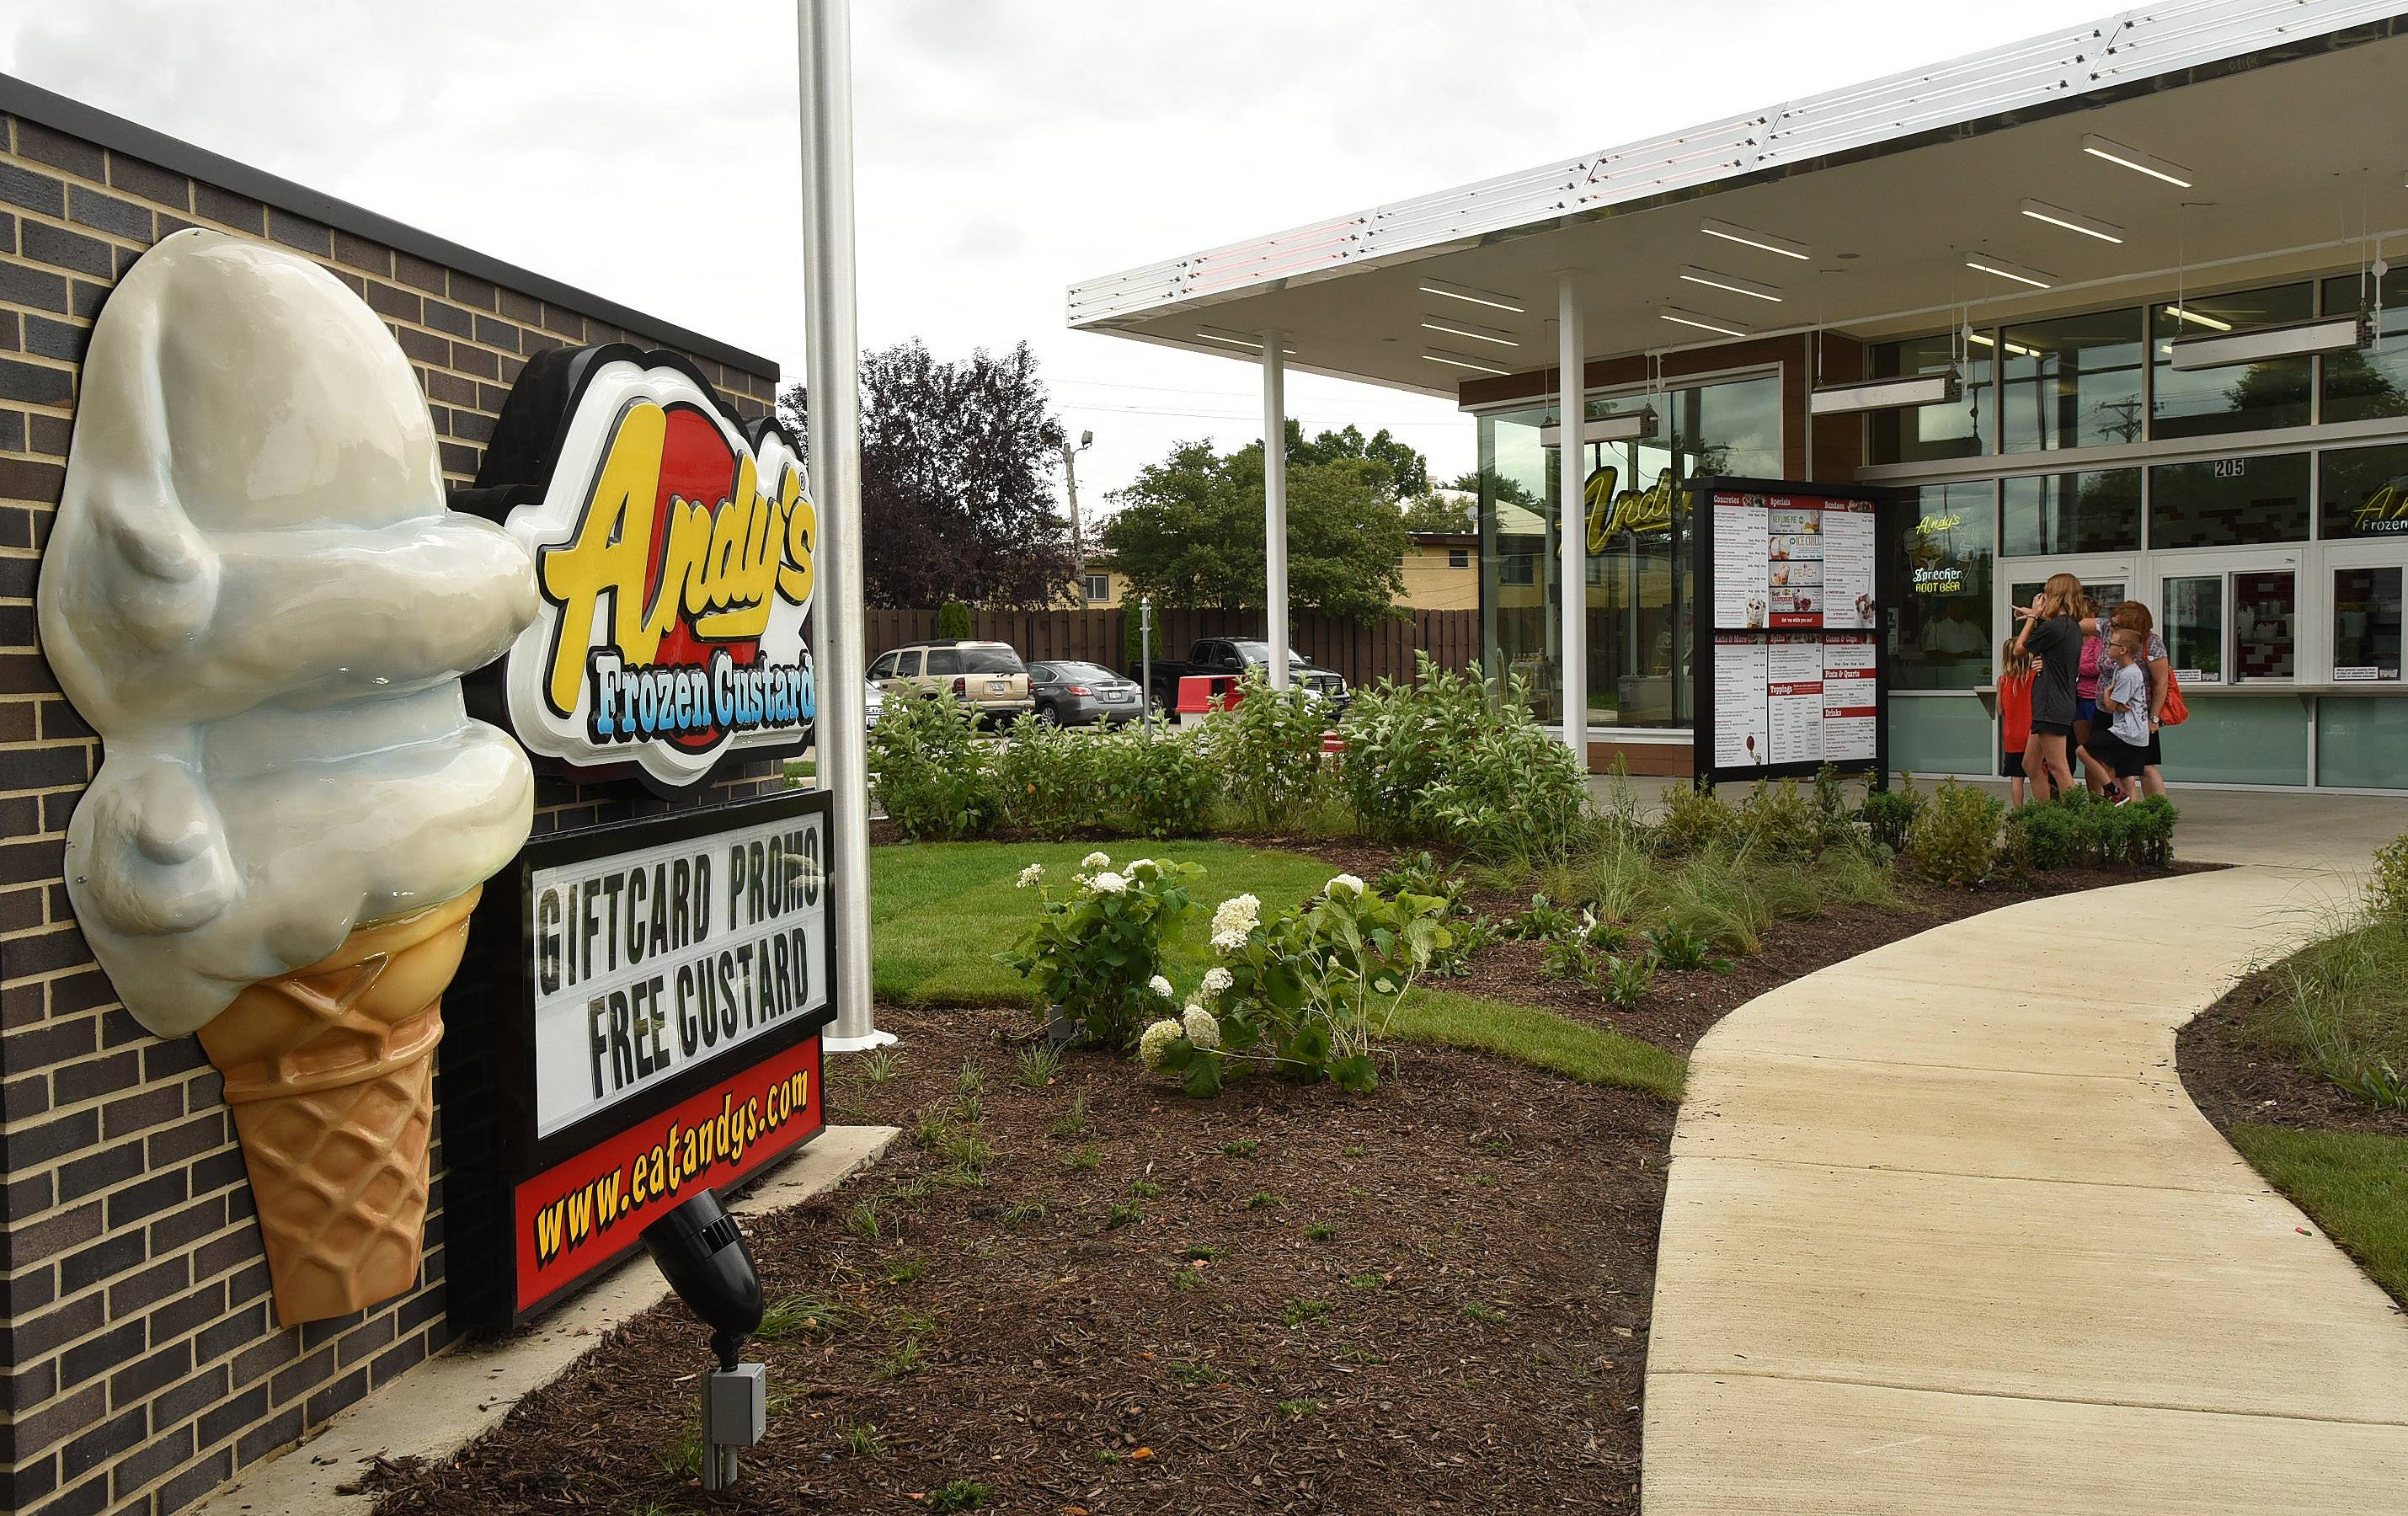 Andy's Frozen Custard drawing a crowd in Mount Prospect